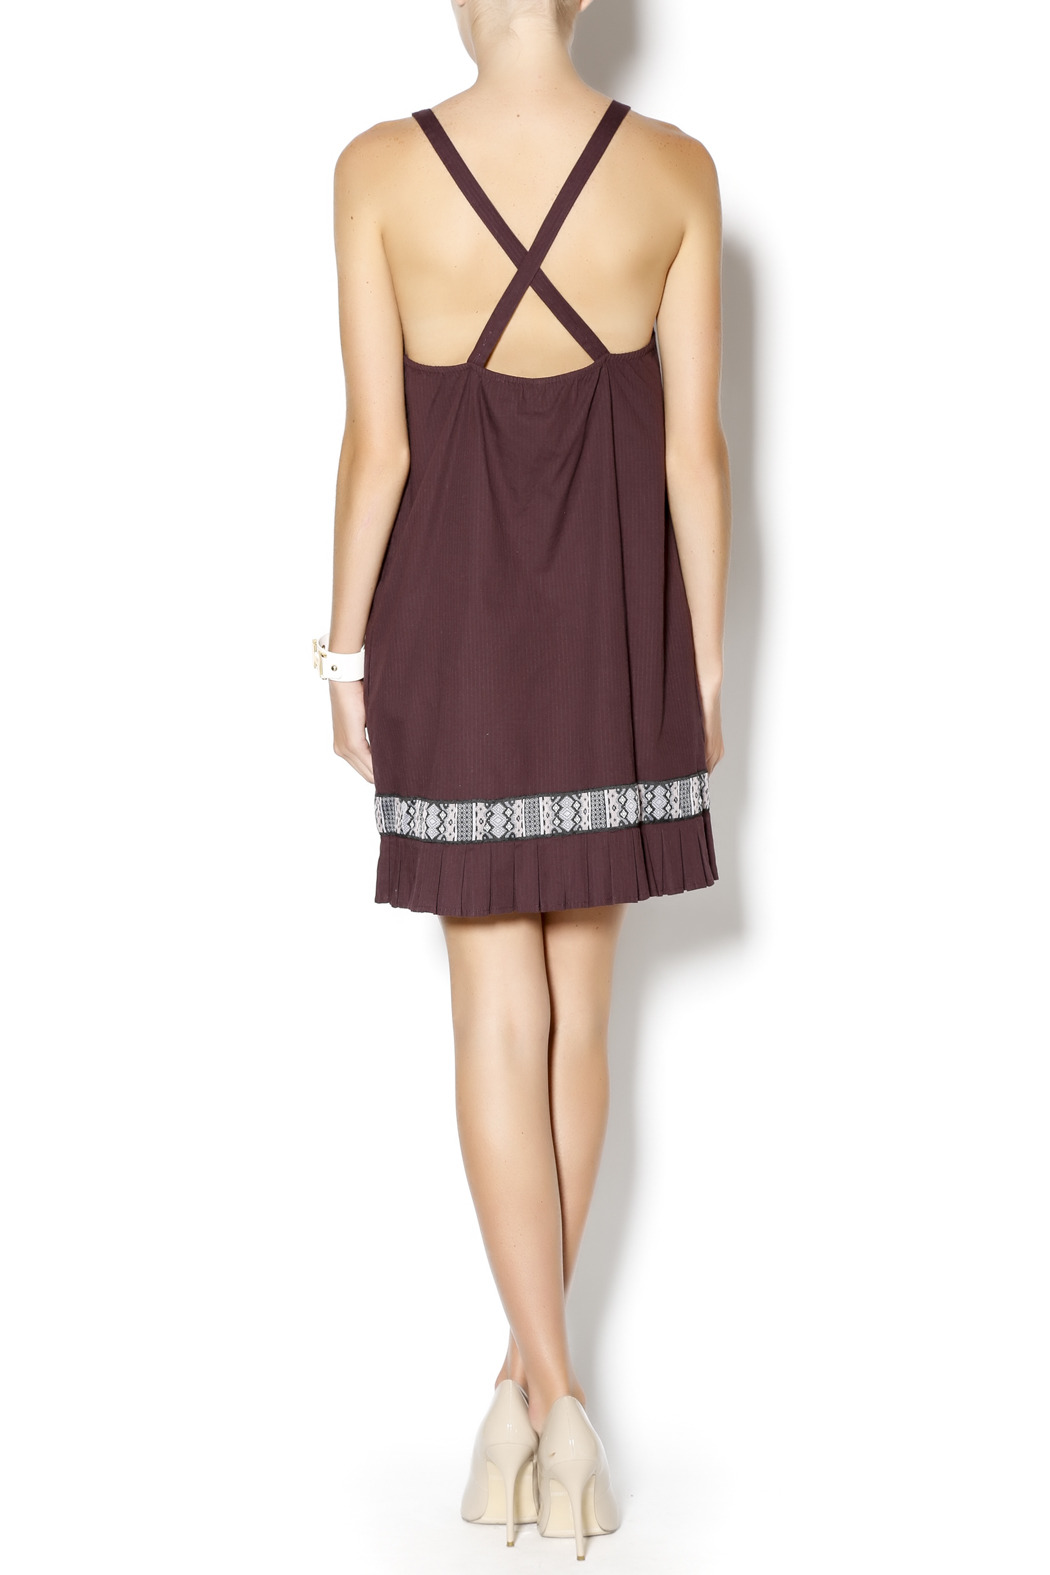 Free People Native Sun Shift Dress - Side Cropped Image